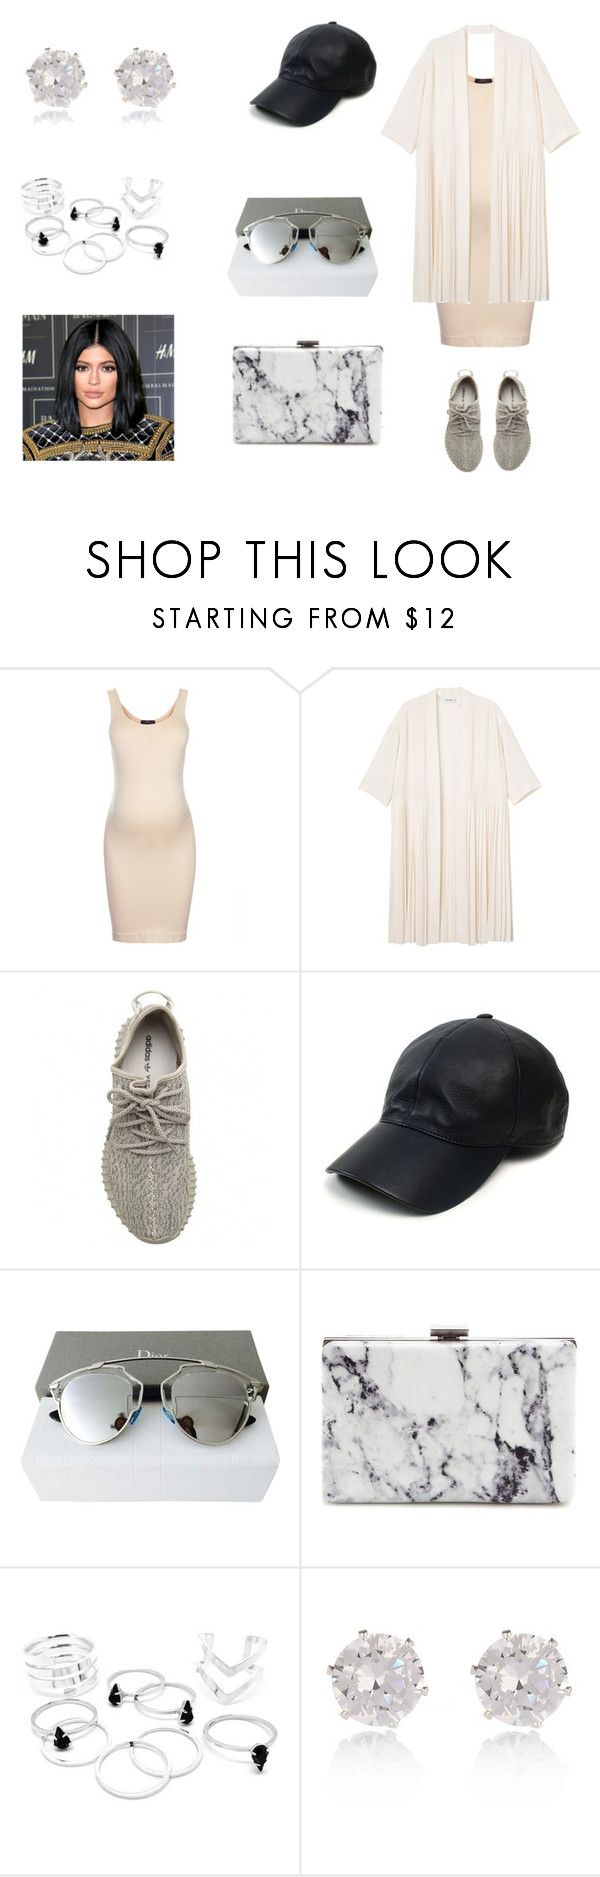 """""""Odd."""" by daniellepearce13 on Polyvore featuring Topshop, Monki, adidas Originals, Vianel, Christian Dior, Balenciaga, River Island and relaxed"""